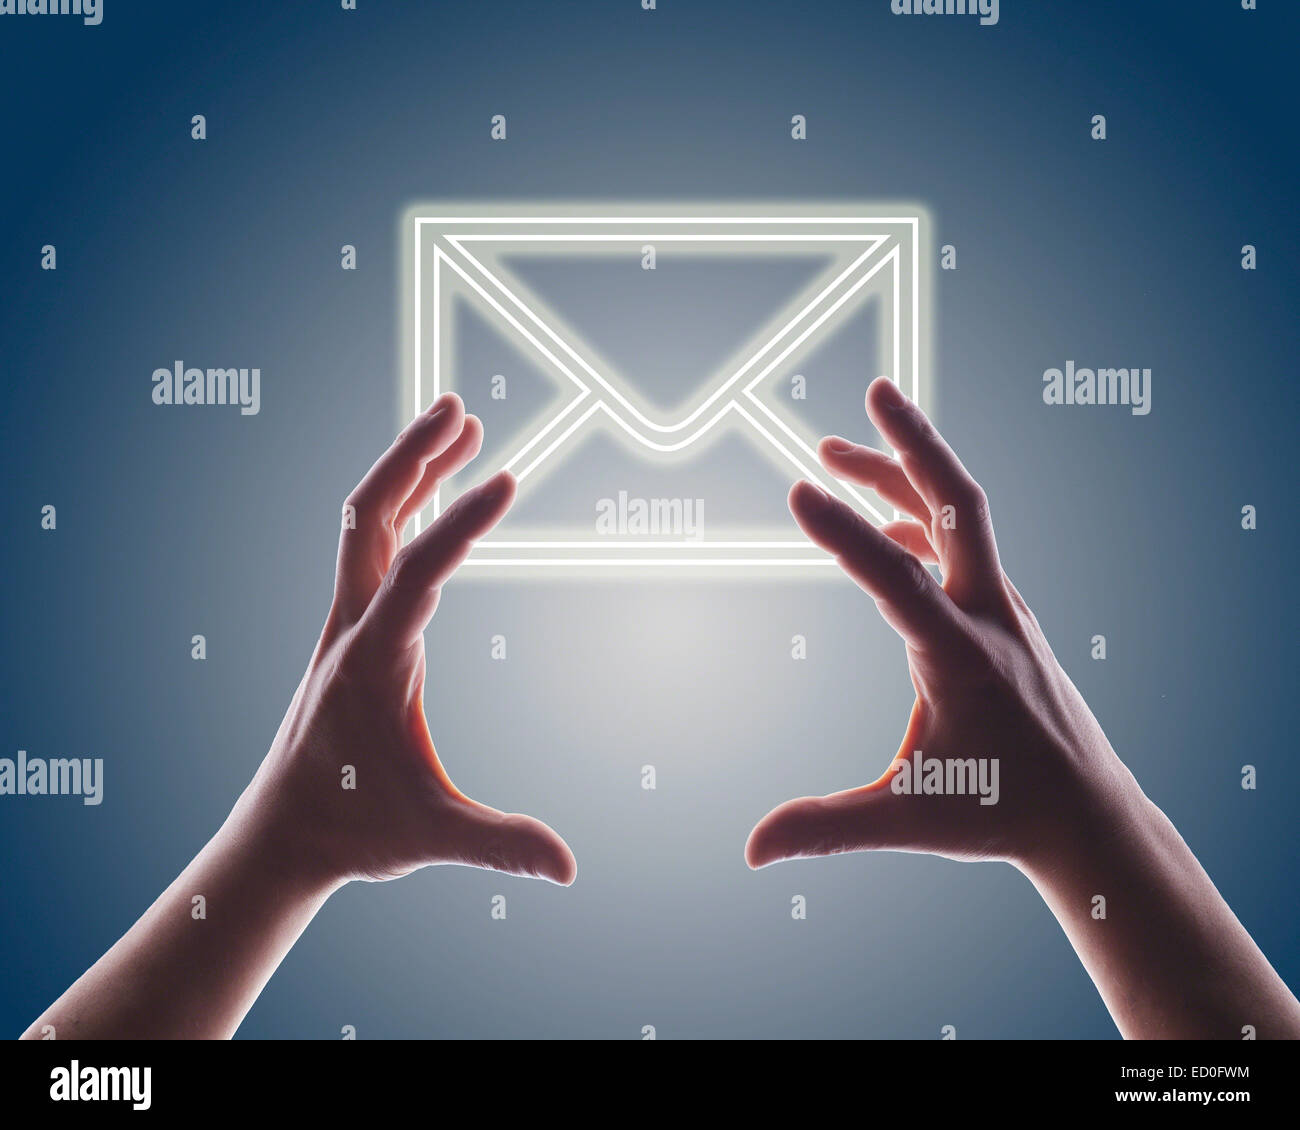 Woman's hands reaching digitally generated image of envelope - Stock Image